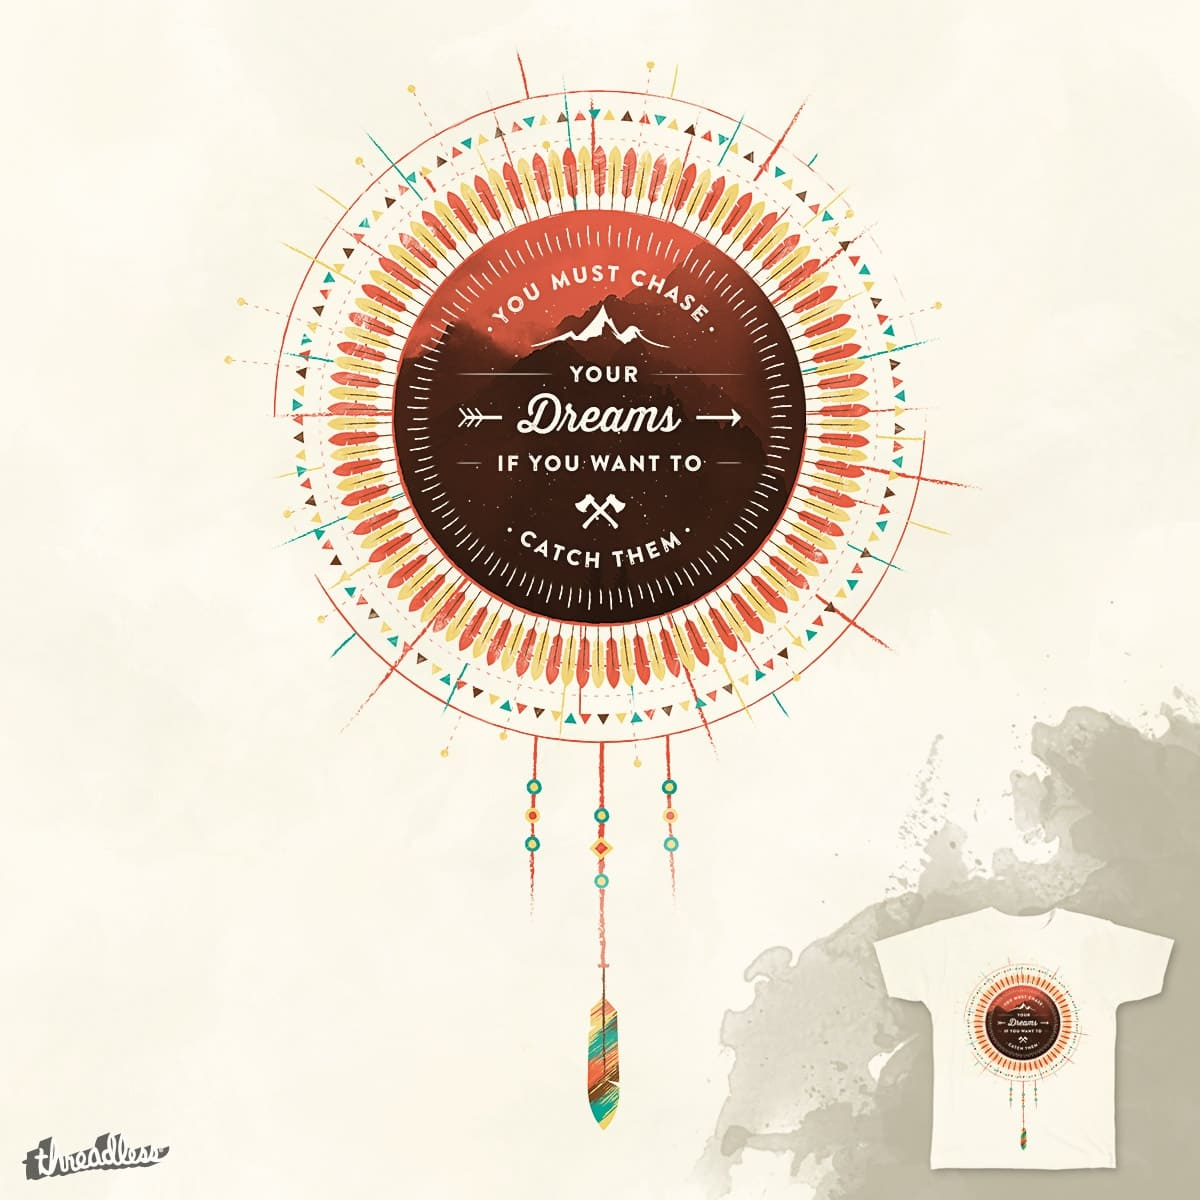 Native Wisdom by JohnArends on Threadless